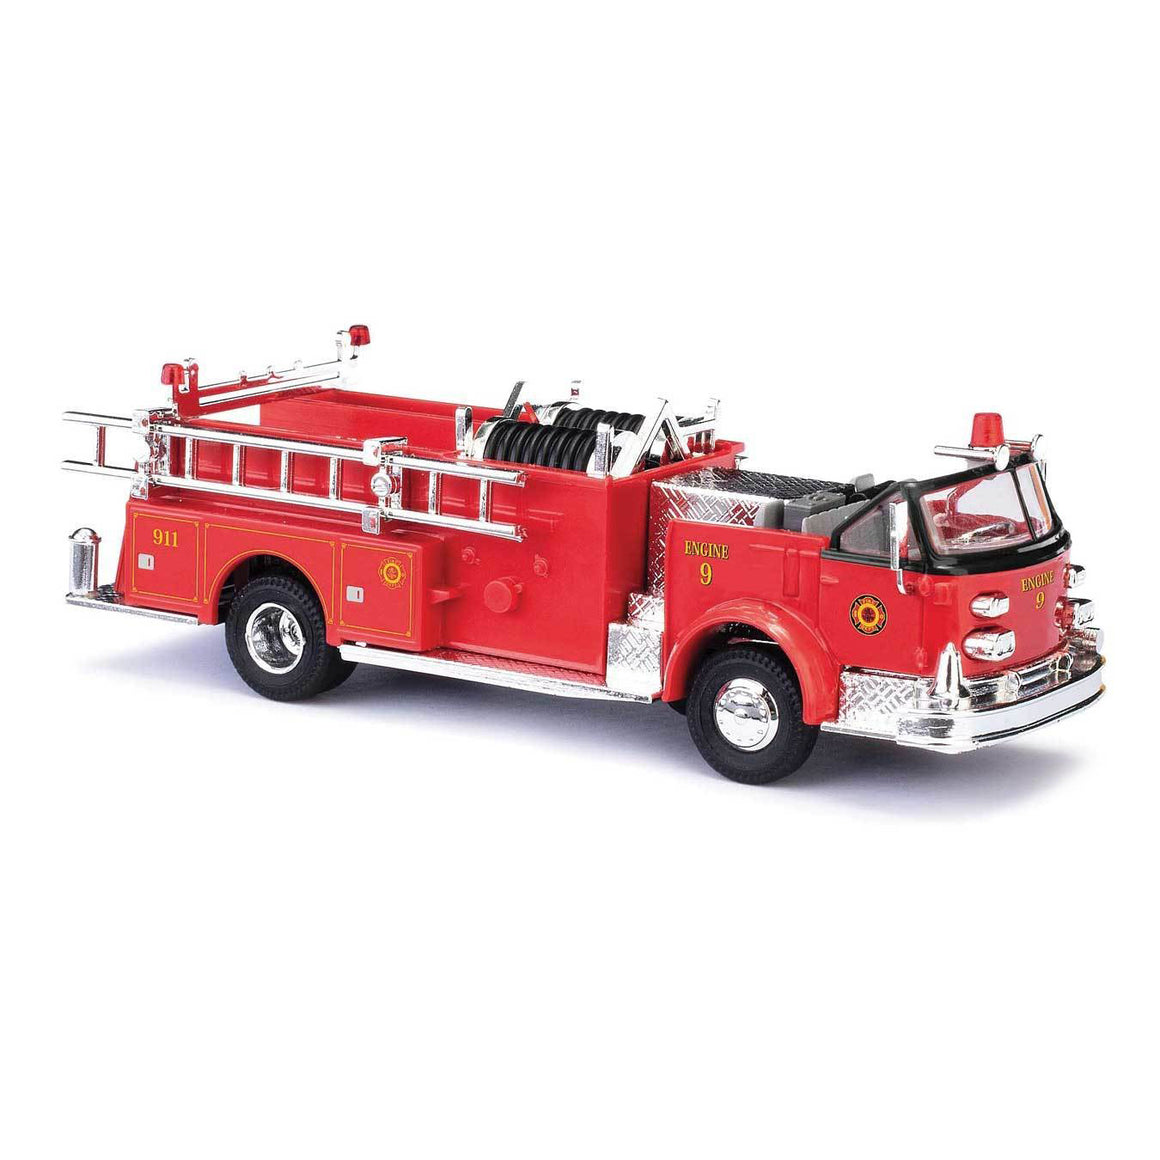 HO Scale: 1968 American LaFrance Open-Cab Pumper